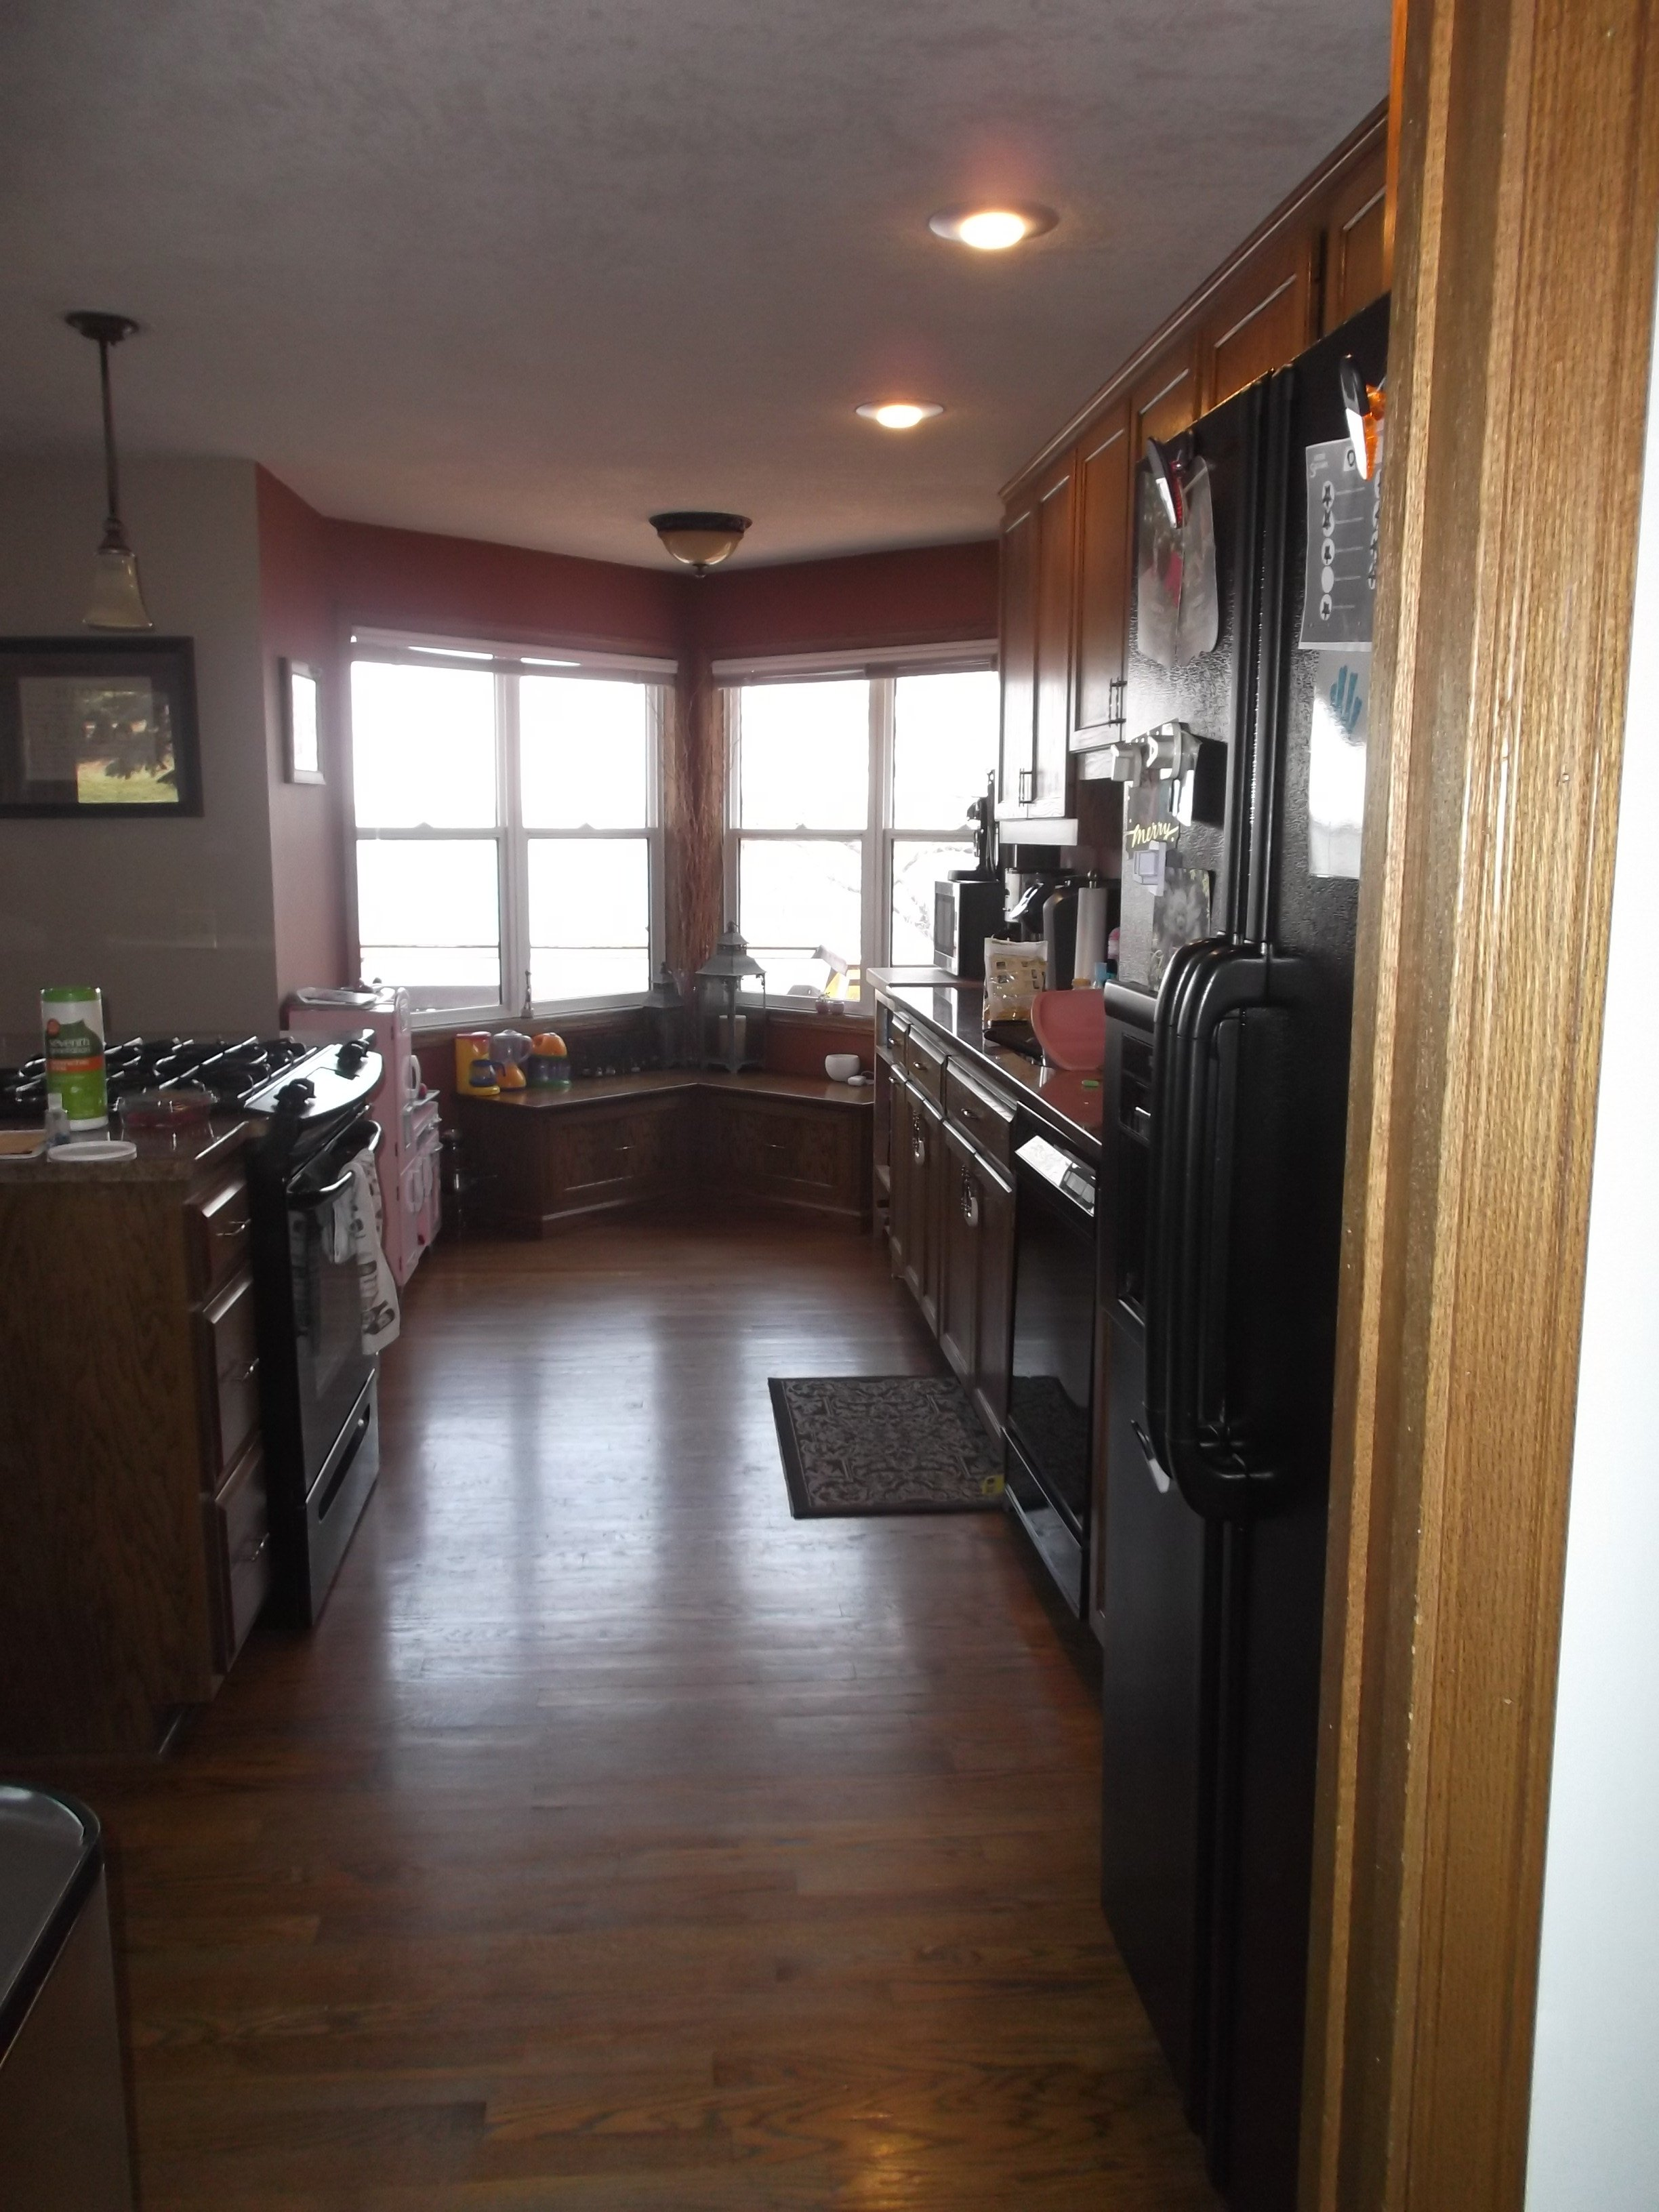 The darker earth tones in this kitchen made the space feel dark despite the large windows.